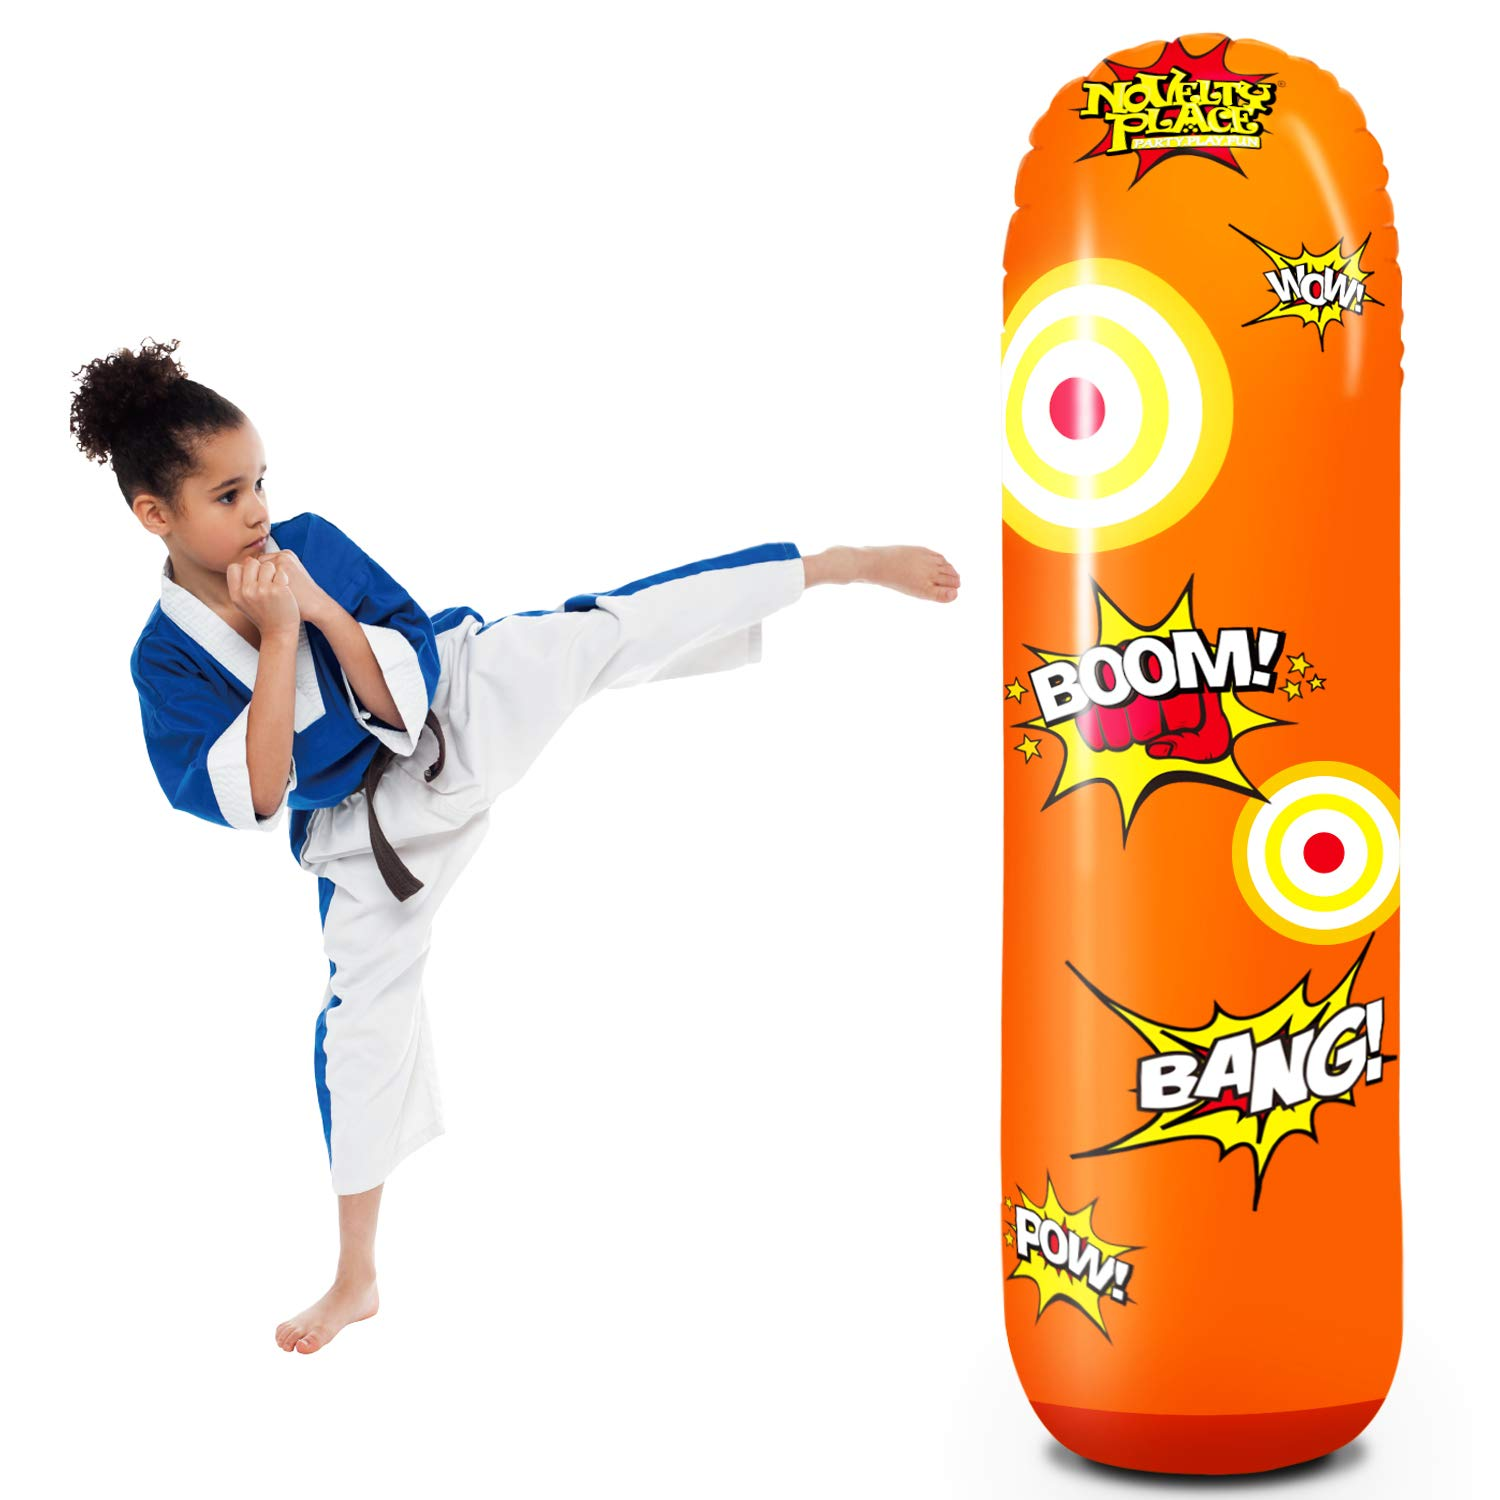 Novelty Place Kid's Inflatable Punching Bag - 4 Feet Tall Free Standing Socker Bopper Buddy - Hit & Bounce Back Air Bop Toy Fun for All Ages Boys Girls Fitness & Stress Relief